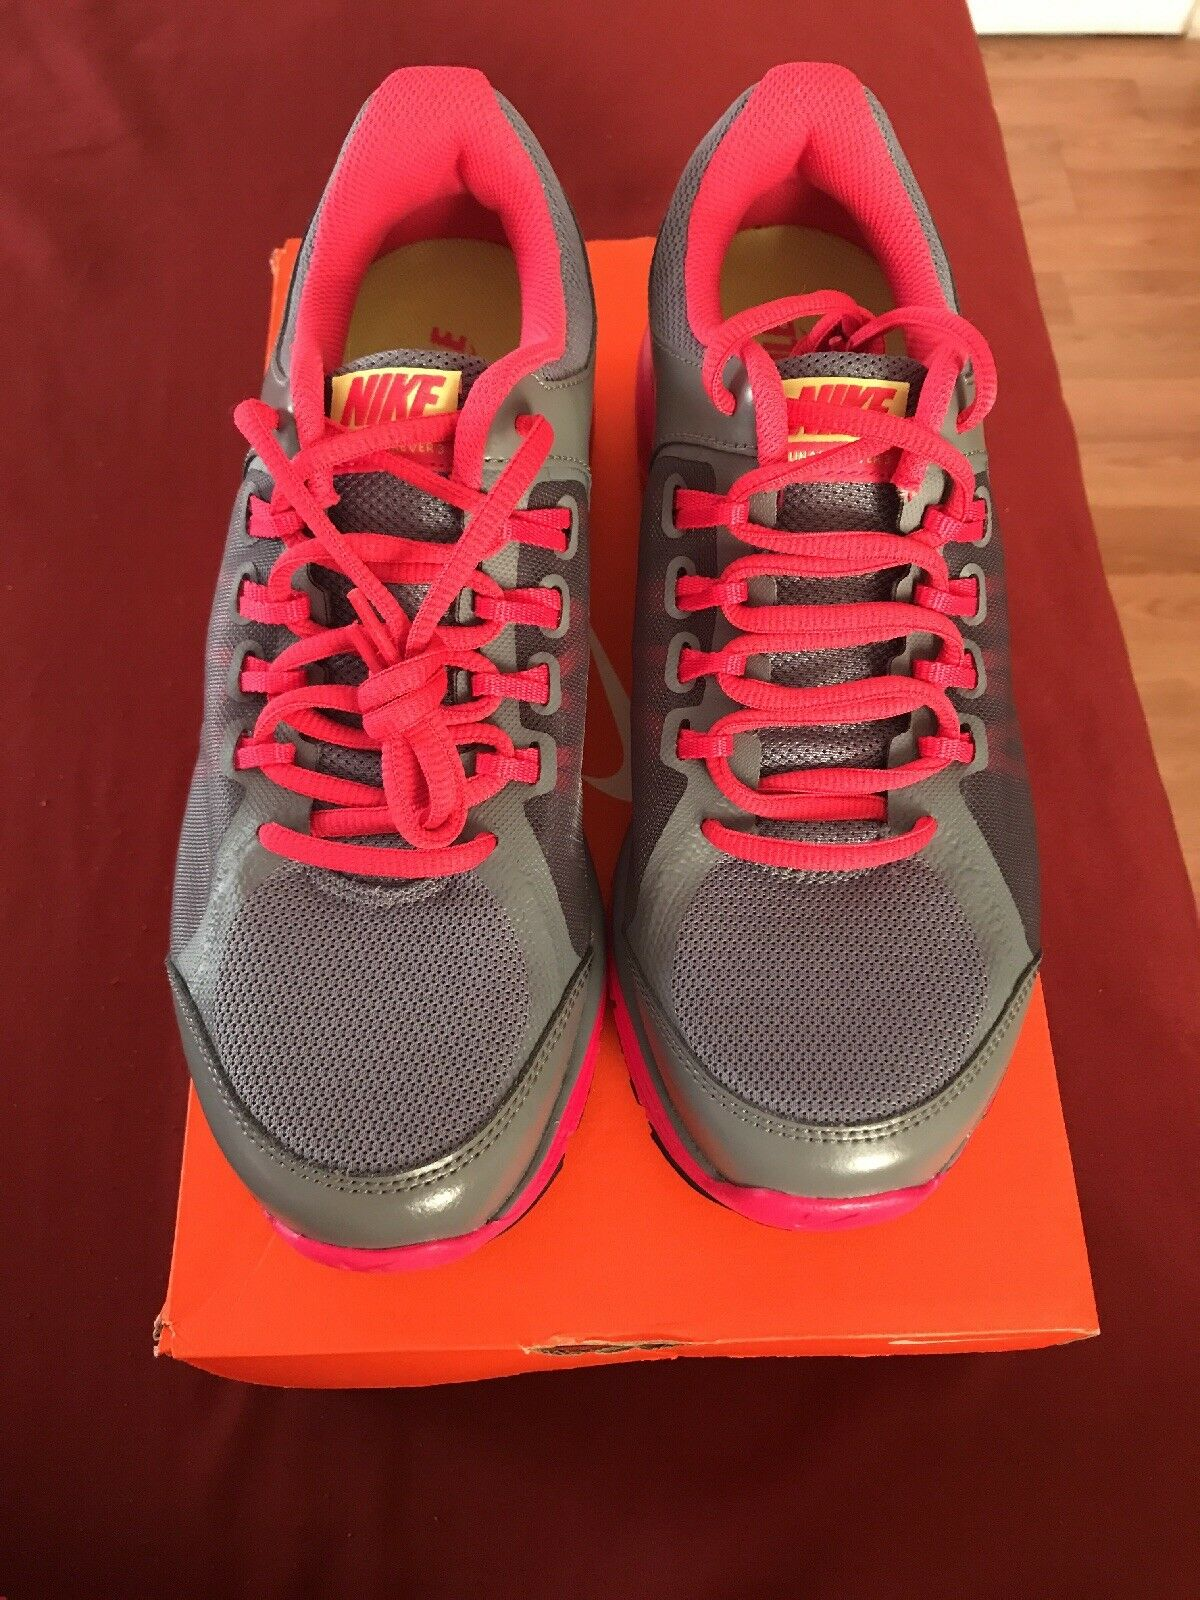 Women's Nike Lunar Forever 3, US size 9, Gray/Pink, brand new in original box